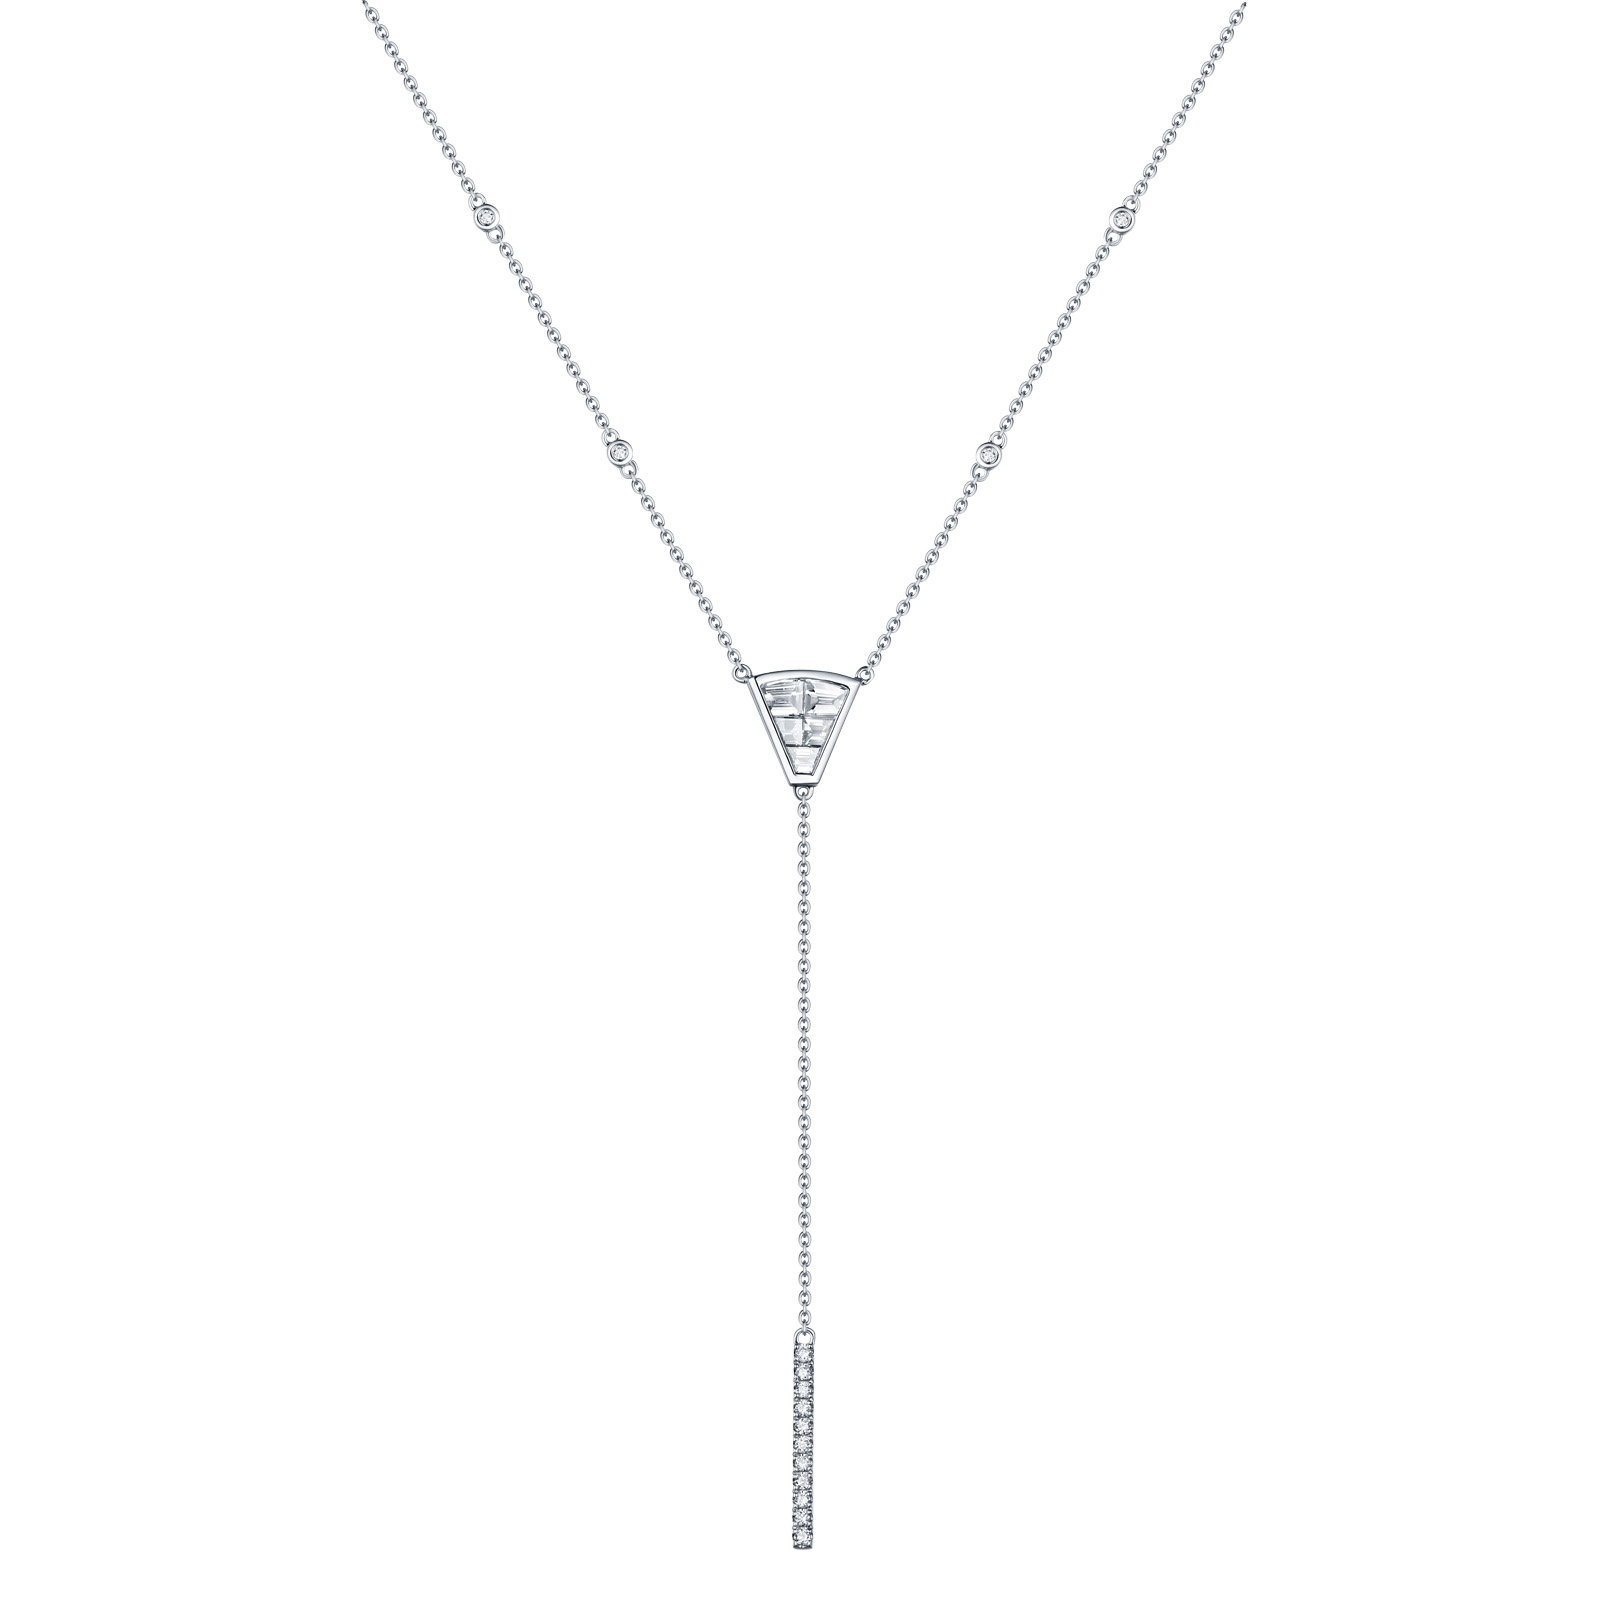 NL26351WHT- 14K White Gold Diamond Necklace, 0.70 TCW